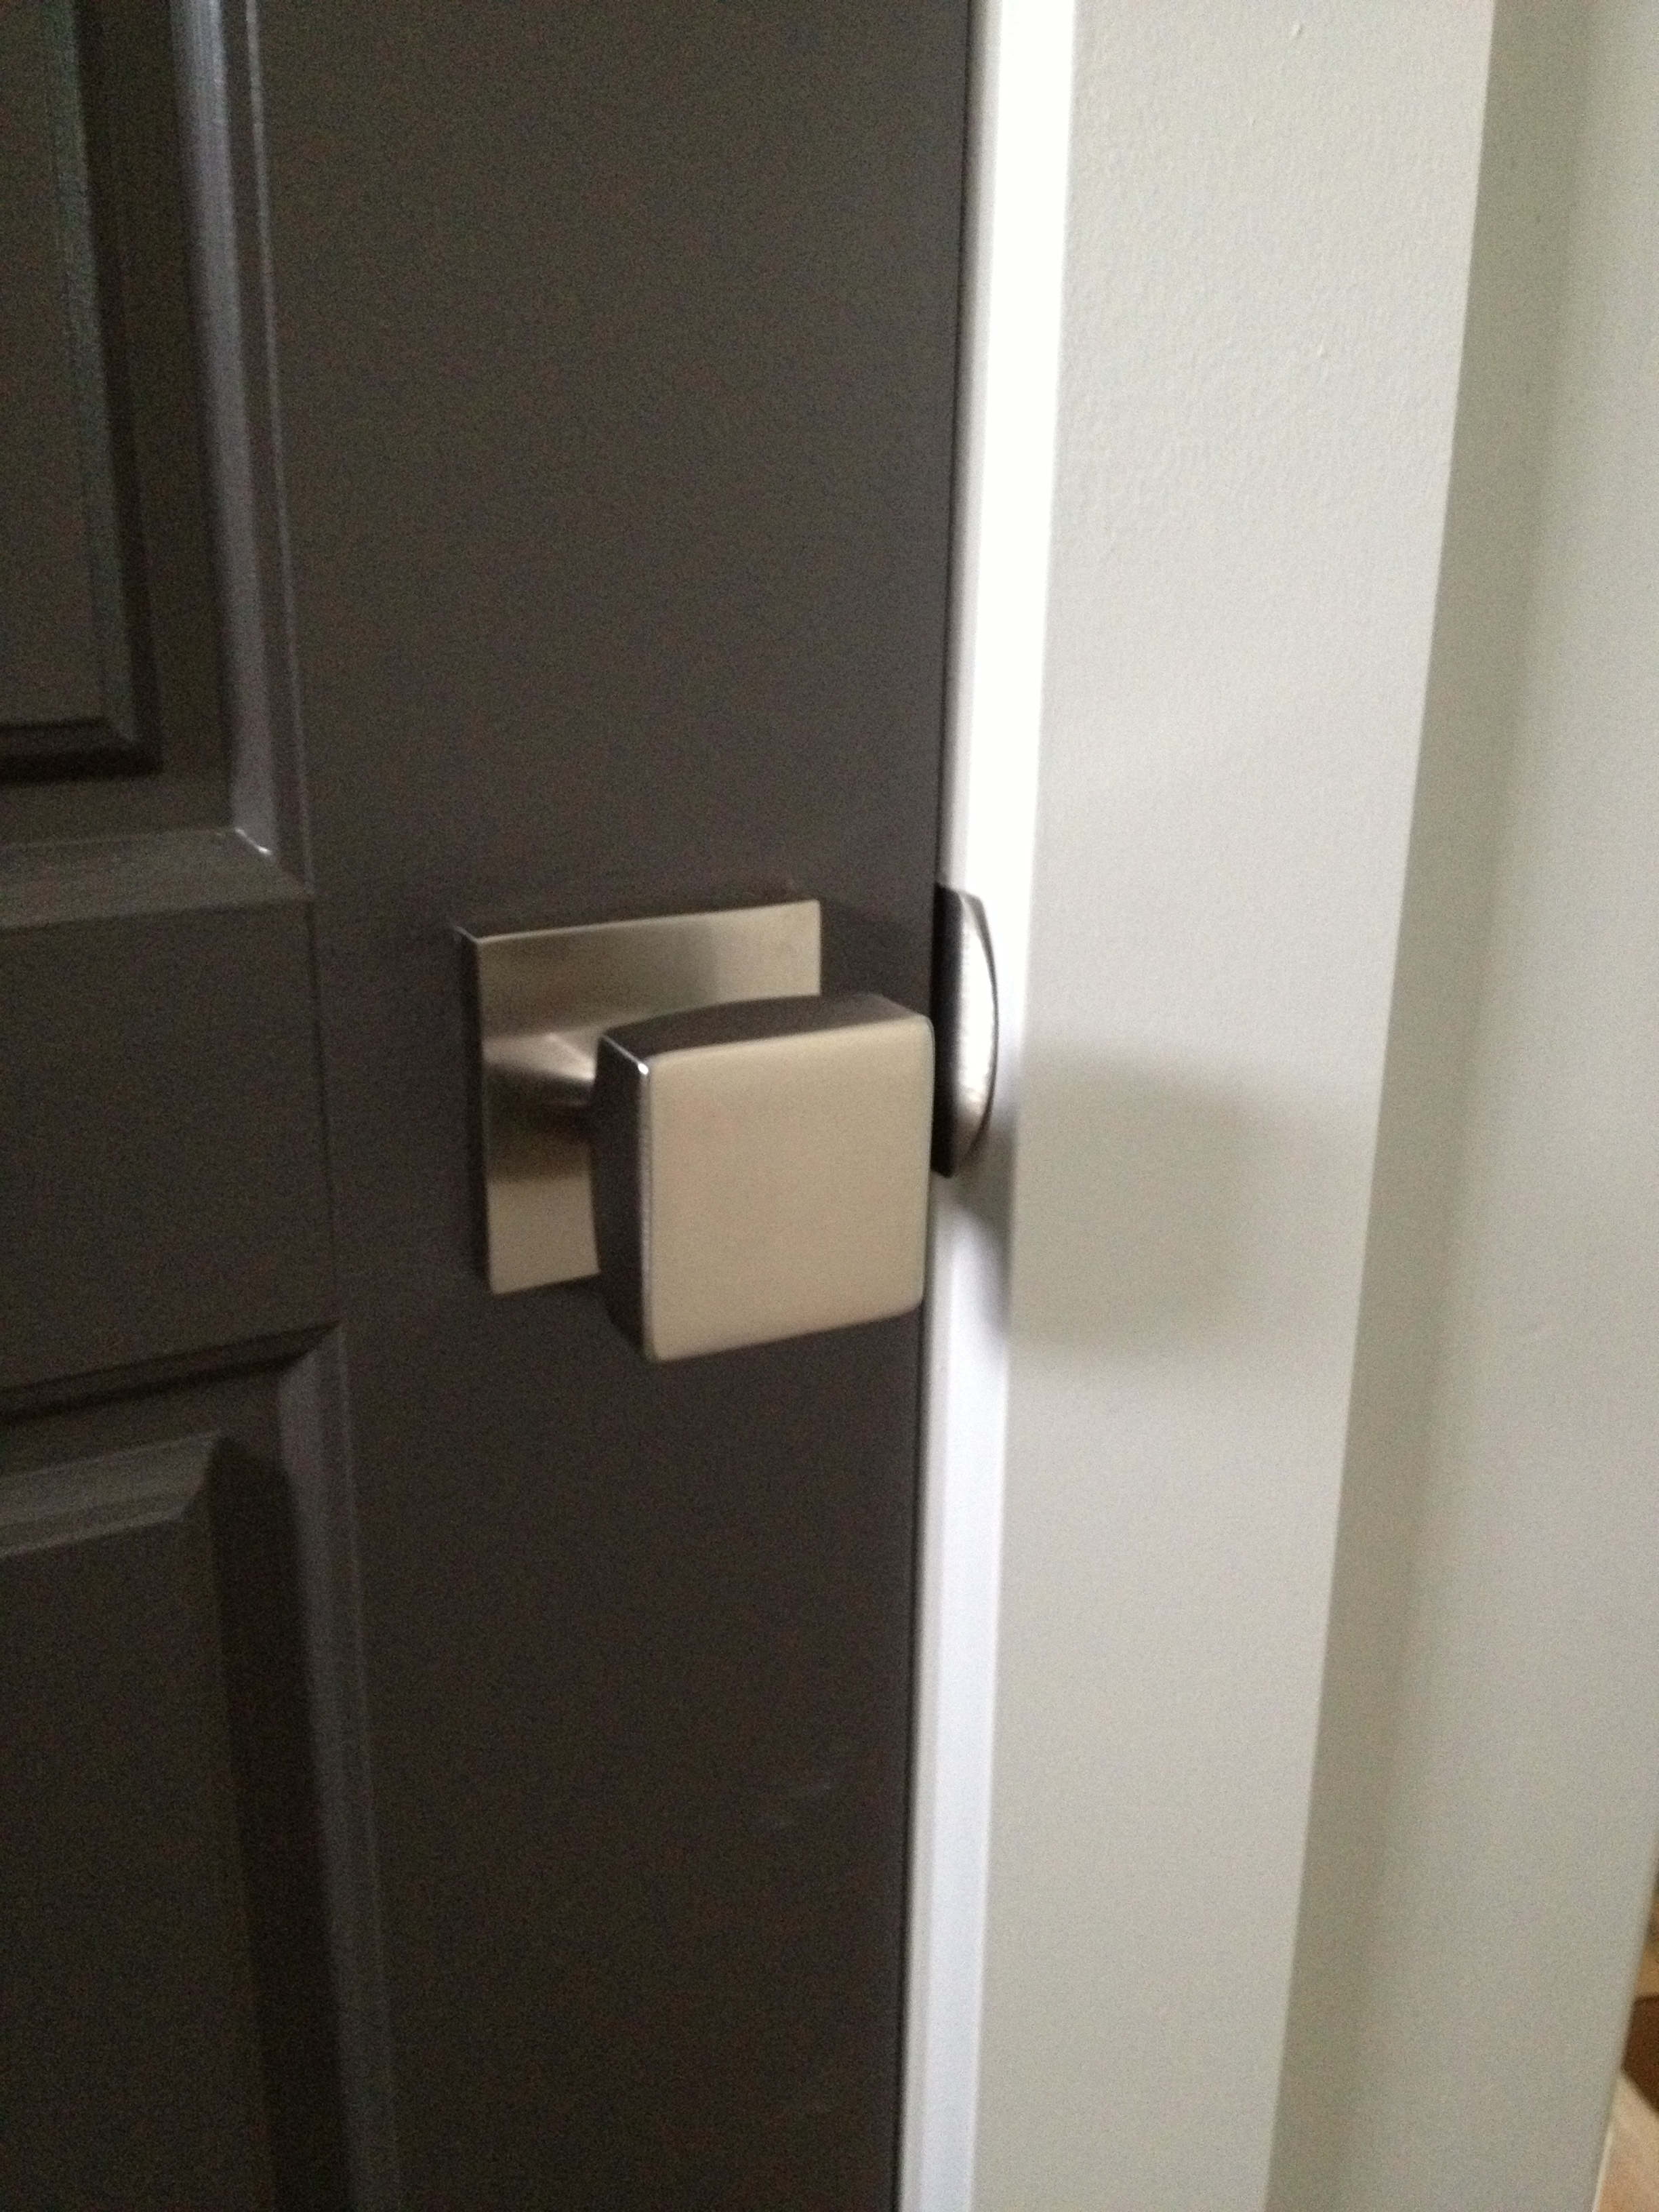 Ritzy Your Emtek Square Door Knob Installation Square Emtek Square Knob Installation Emtek Pocket Door Hardware Installation Emtek Pocket Door Hardware Installation Instructions houzz 01 Emtek Pocket Door Hardware